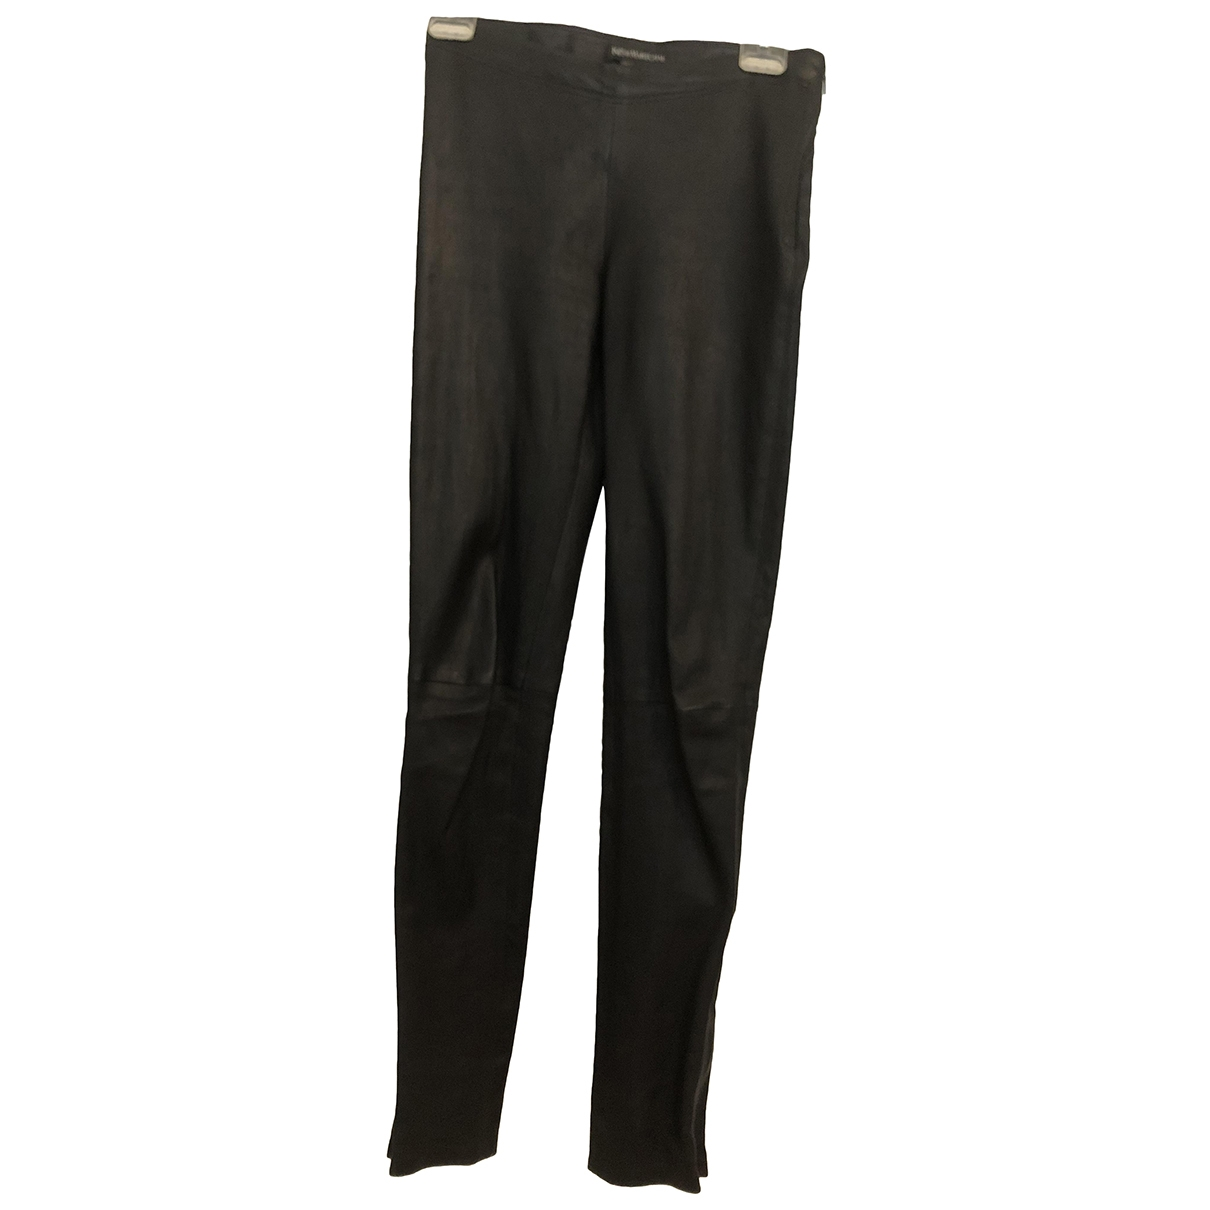 Ines Et Marechal \N Black Leather Trousers for Women 38 FR